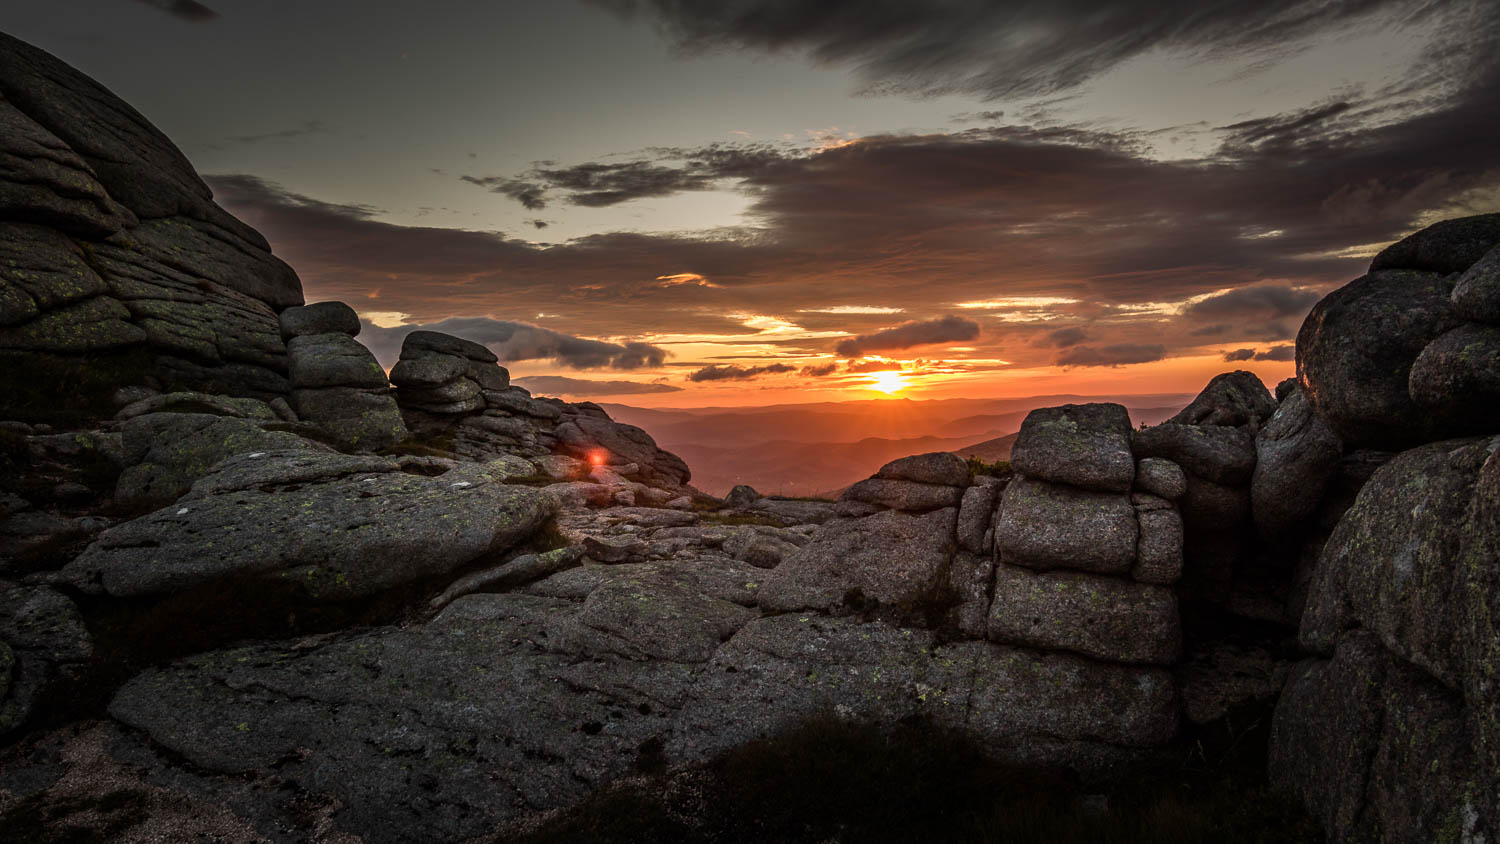 Sunrise over the Grampian Mountains - Taken from the summit of Meikle Pap.